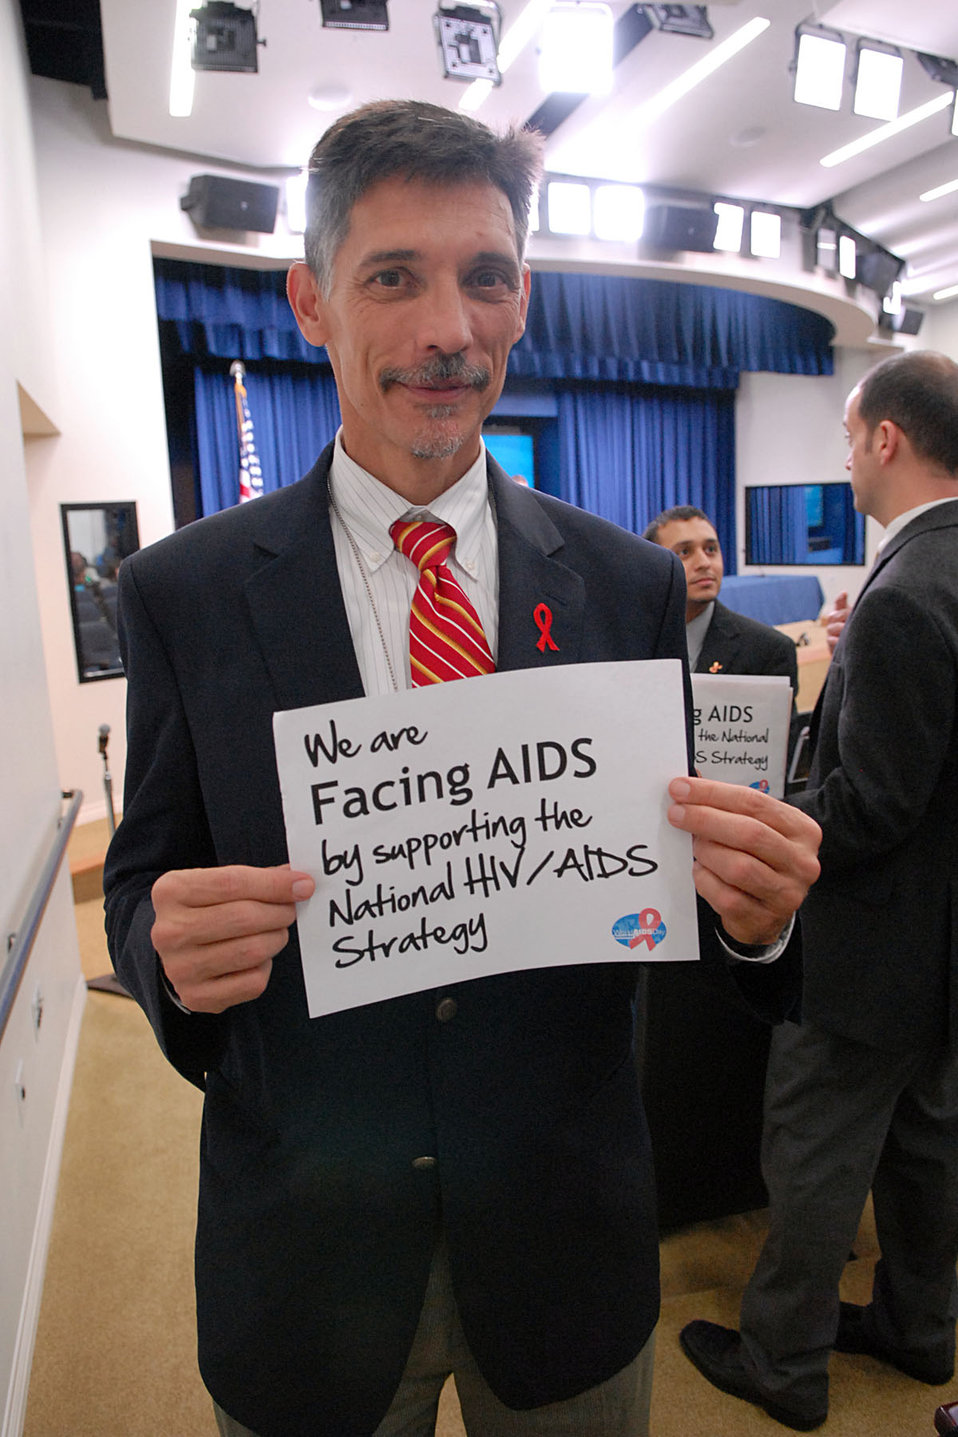 We are Facing AIDS by supporting the National HIV/AIDS Strategy